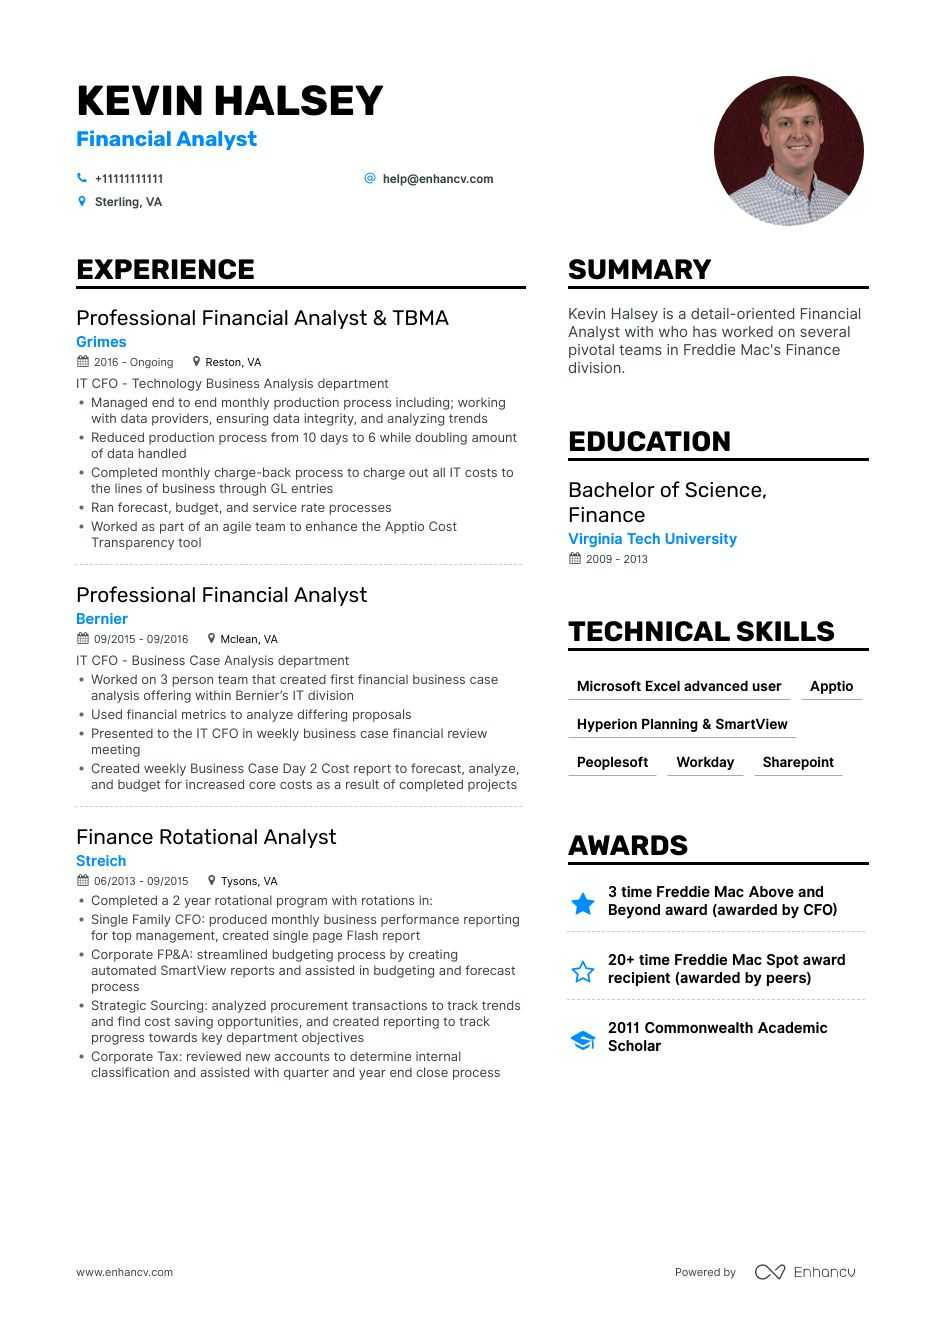 financial analyst resume example for enhancv planning analysis office secretary examples Resume Financial Planning & Analysis Resume